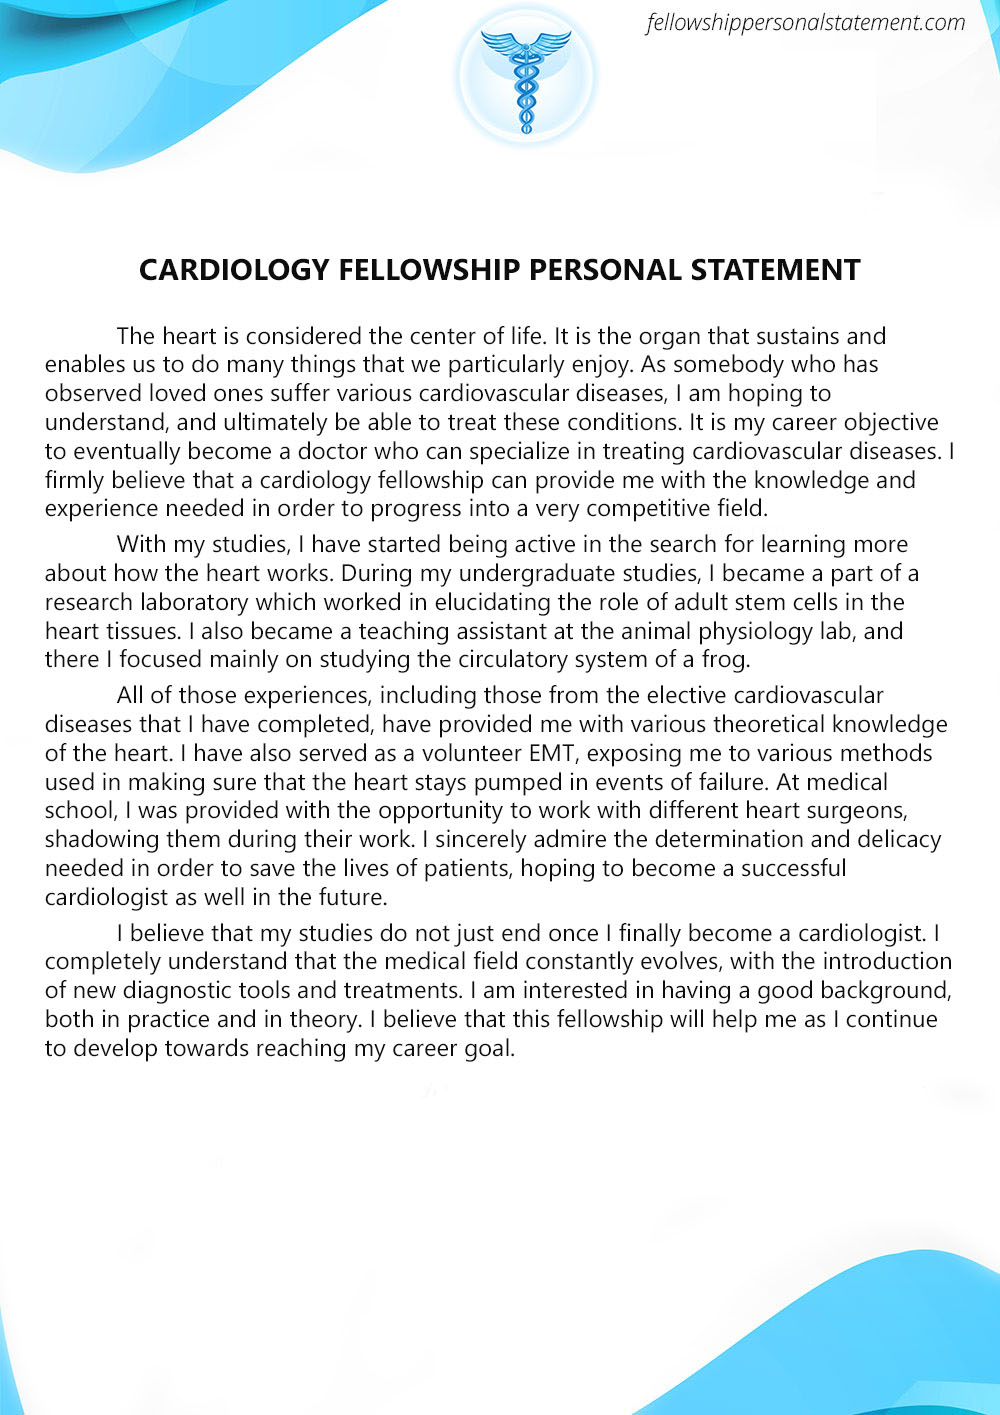 Fellowship Application Cover Letter  MaggiLocustdesignCo